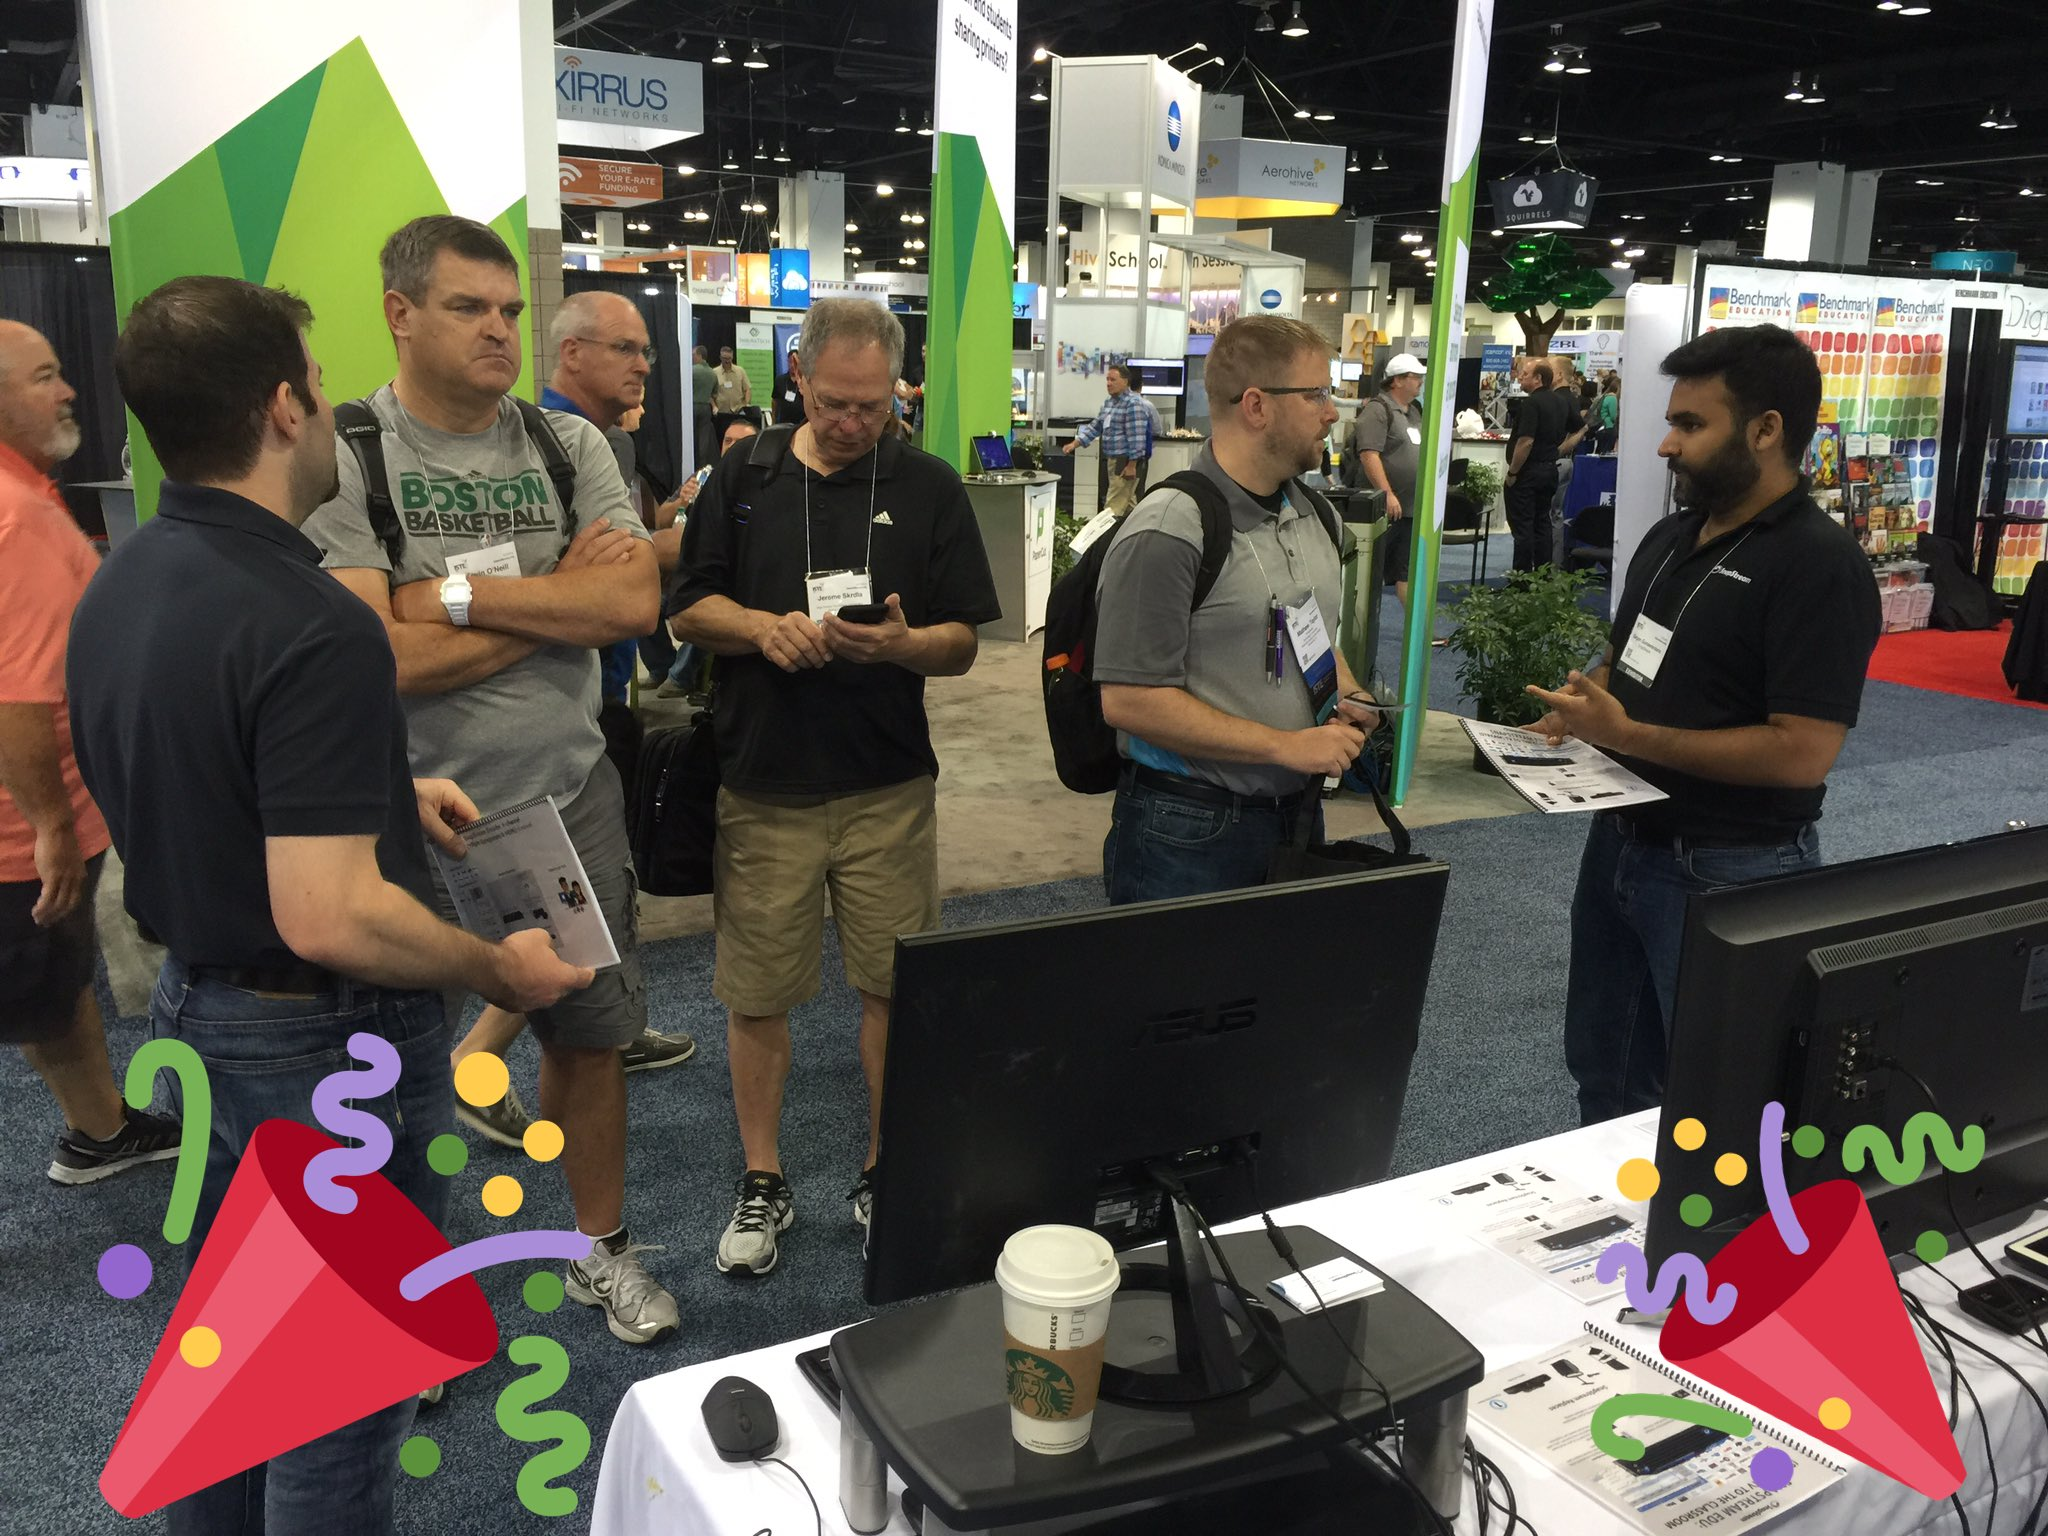 Come see what all the fuss is about at the SnapStream booth, 3634. #ISTE2016  #ISTE https://t.co/Acgm3nqkc3